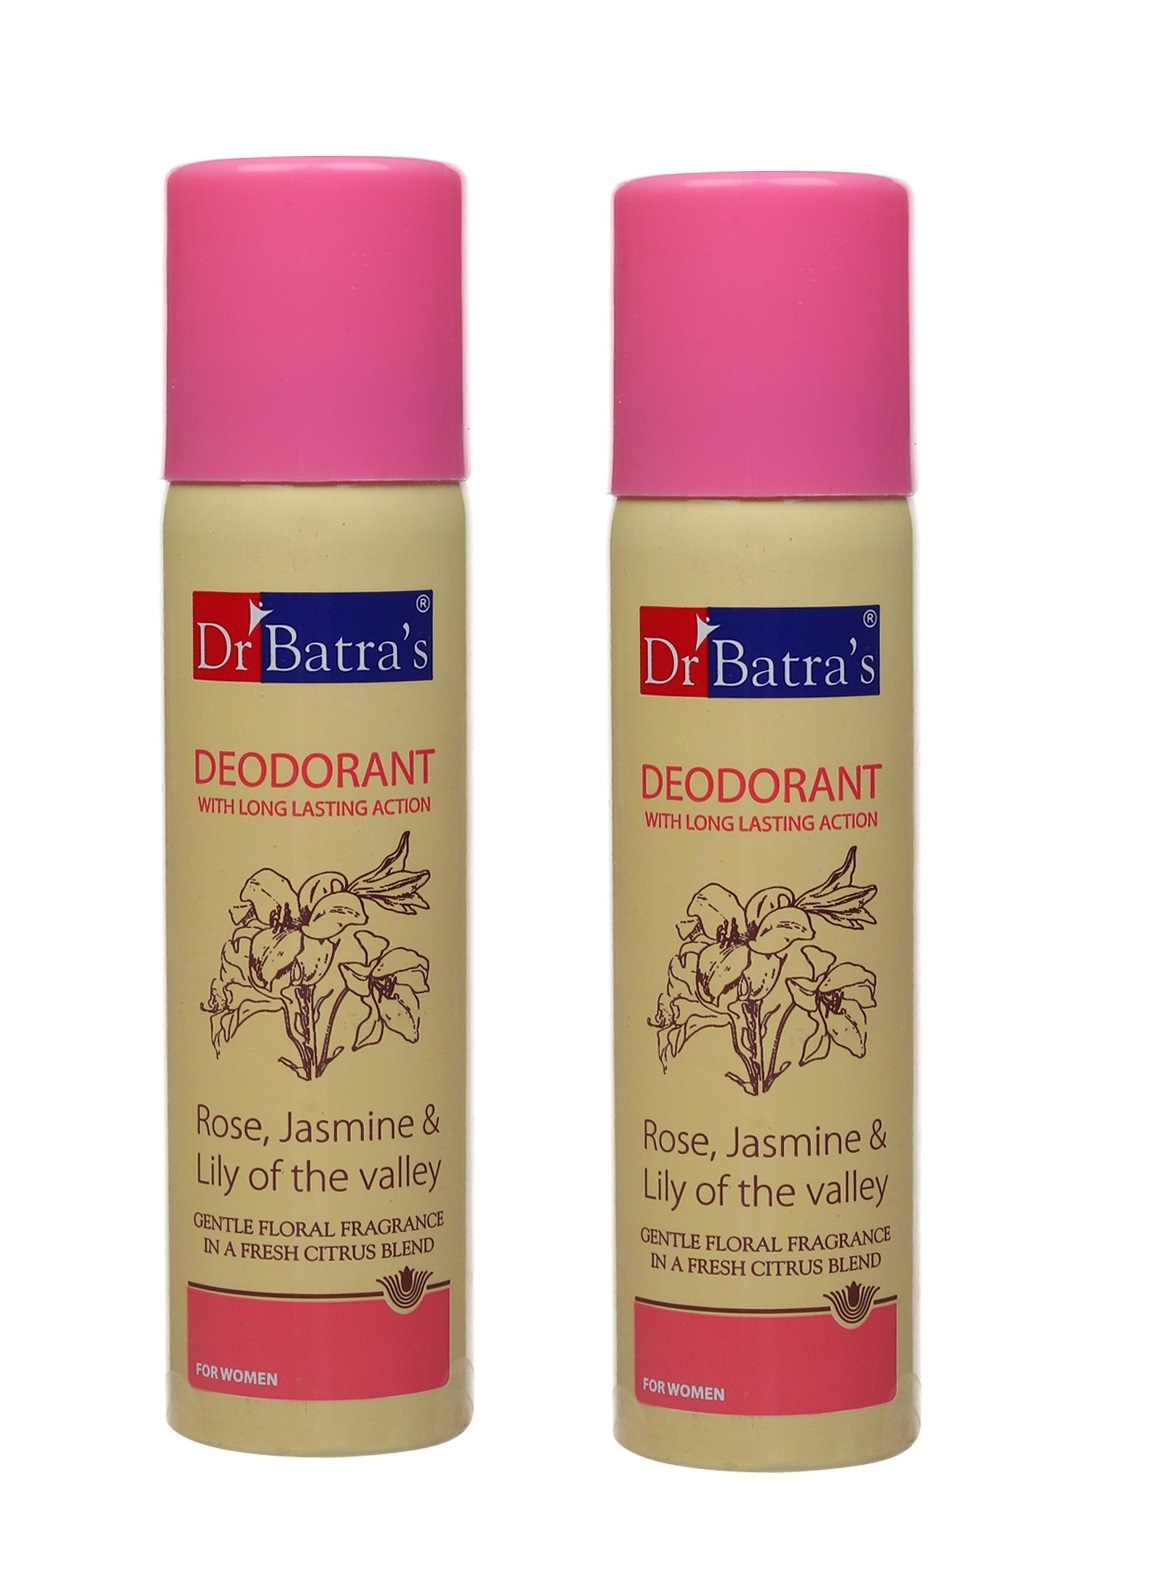 Dr Batra's | Dr Batra's Deodarant With Long Lasting Action Rose, Jasmine & Lily Of The Valley - 100 gm (Pack of 2)